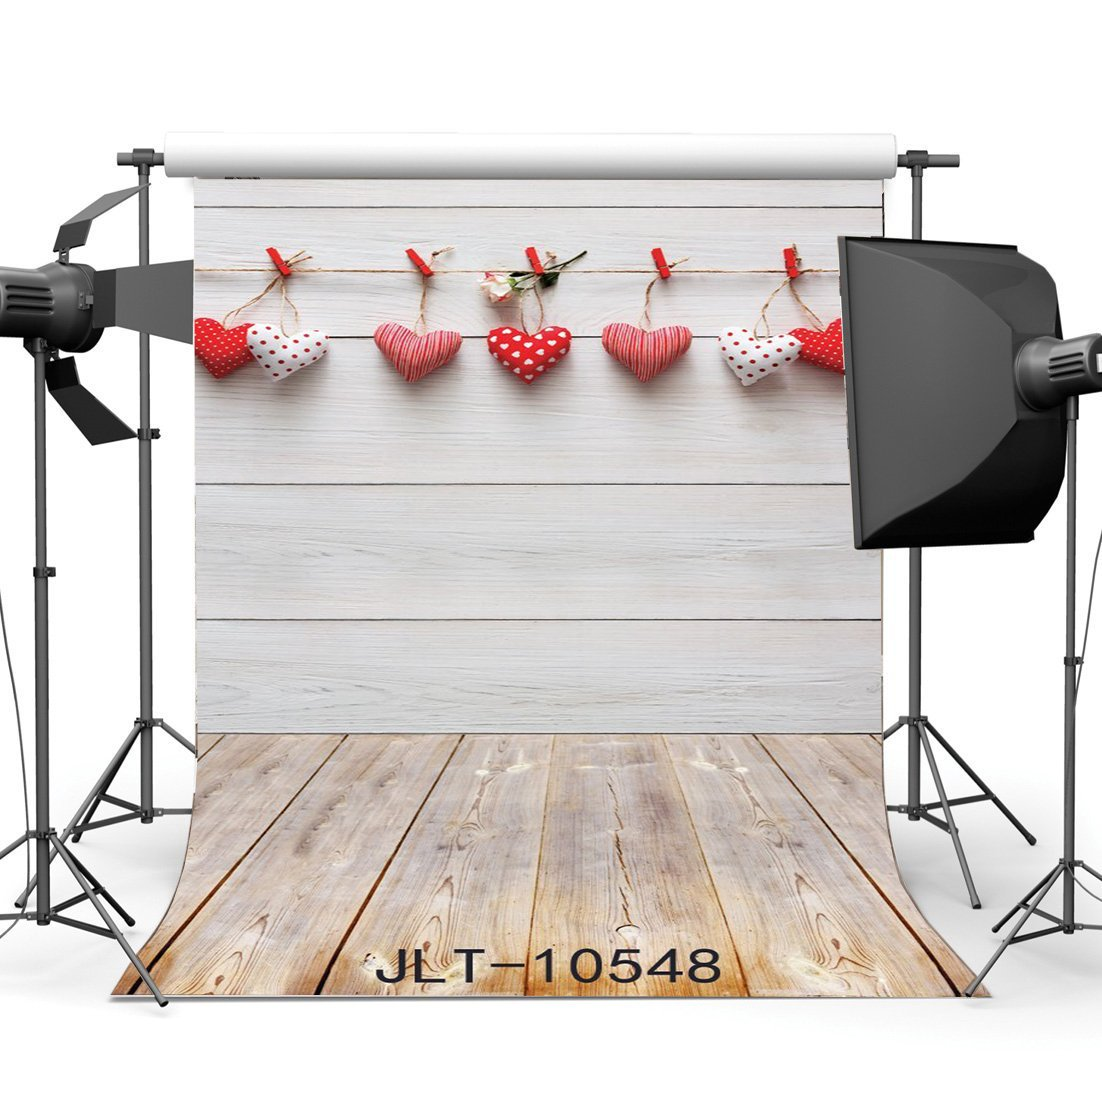 Photography Backdrops Hearts Hanging on Whitewashed Wood Wall & Nostalgia Stripe Wooden Floor Christmas Holiday  Background-in Photo Studio Accessories from Consumer Electronics